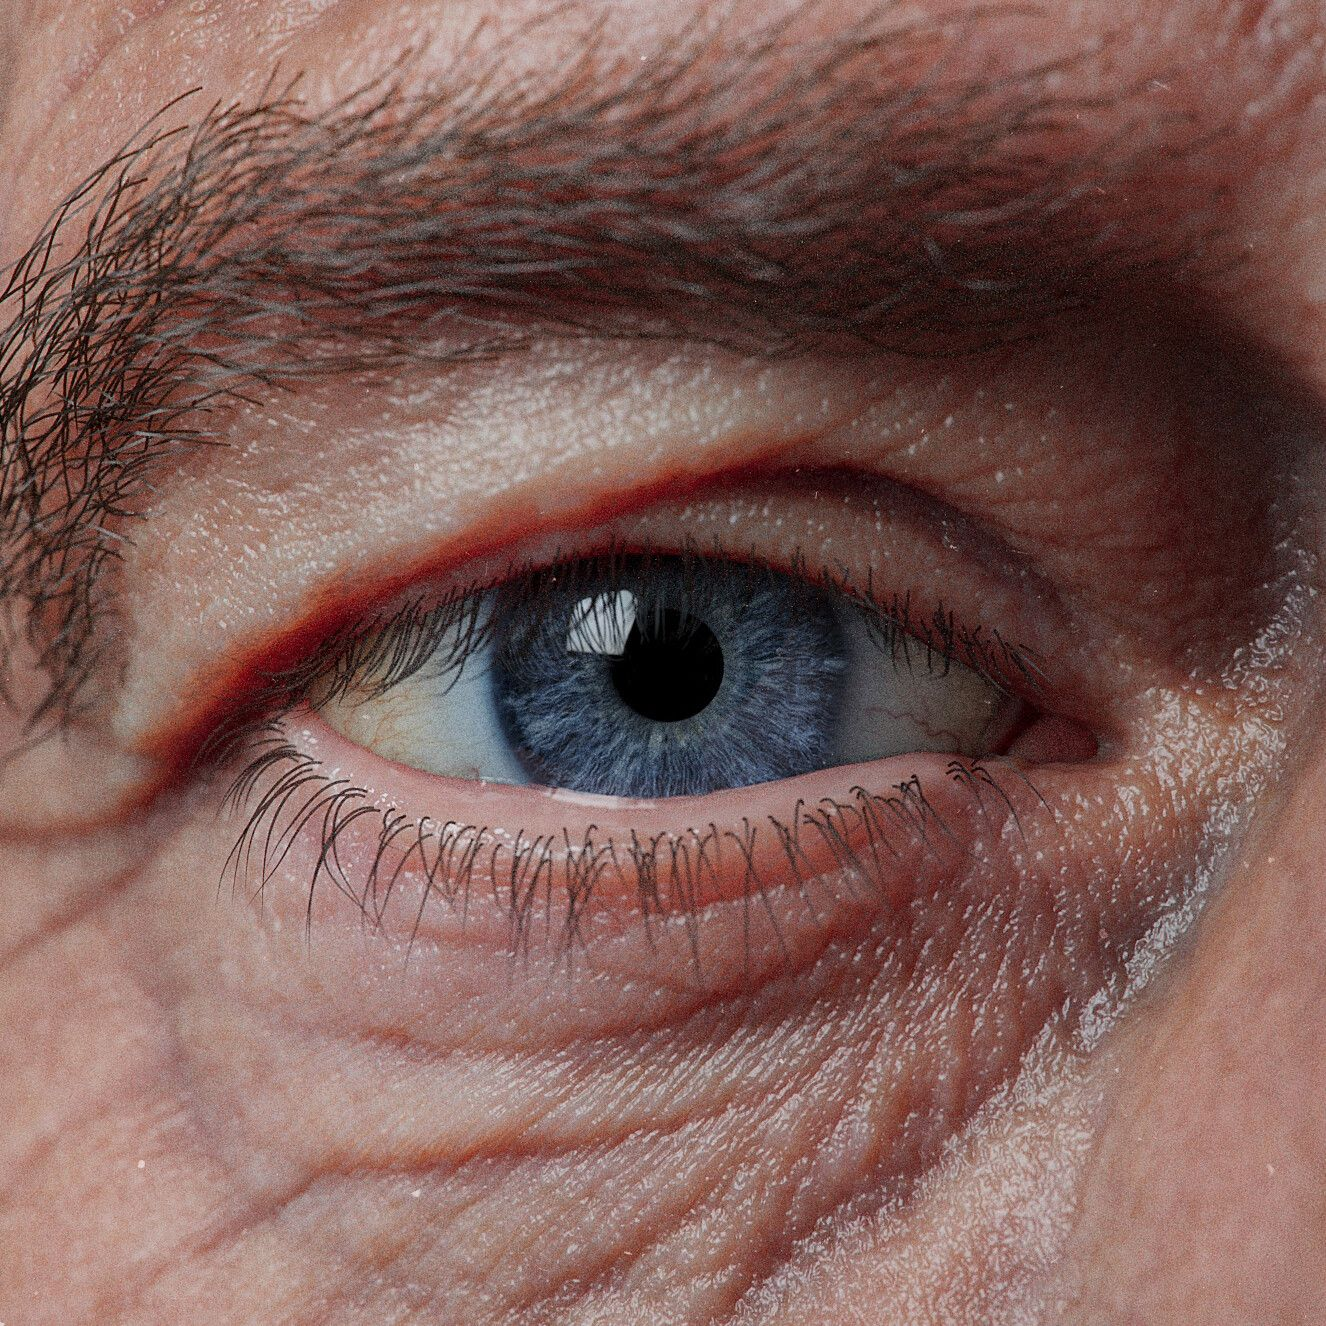 ArtStation - Tutorial: Creating a Realistic Eye in CG 2.0, Tom Newbury